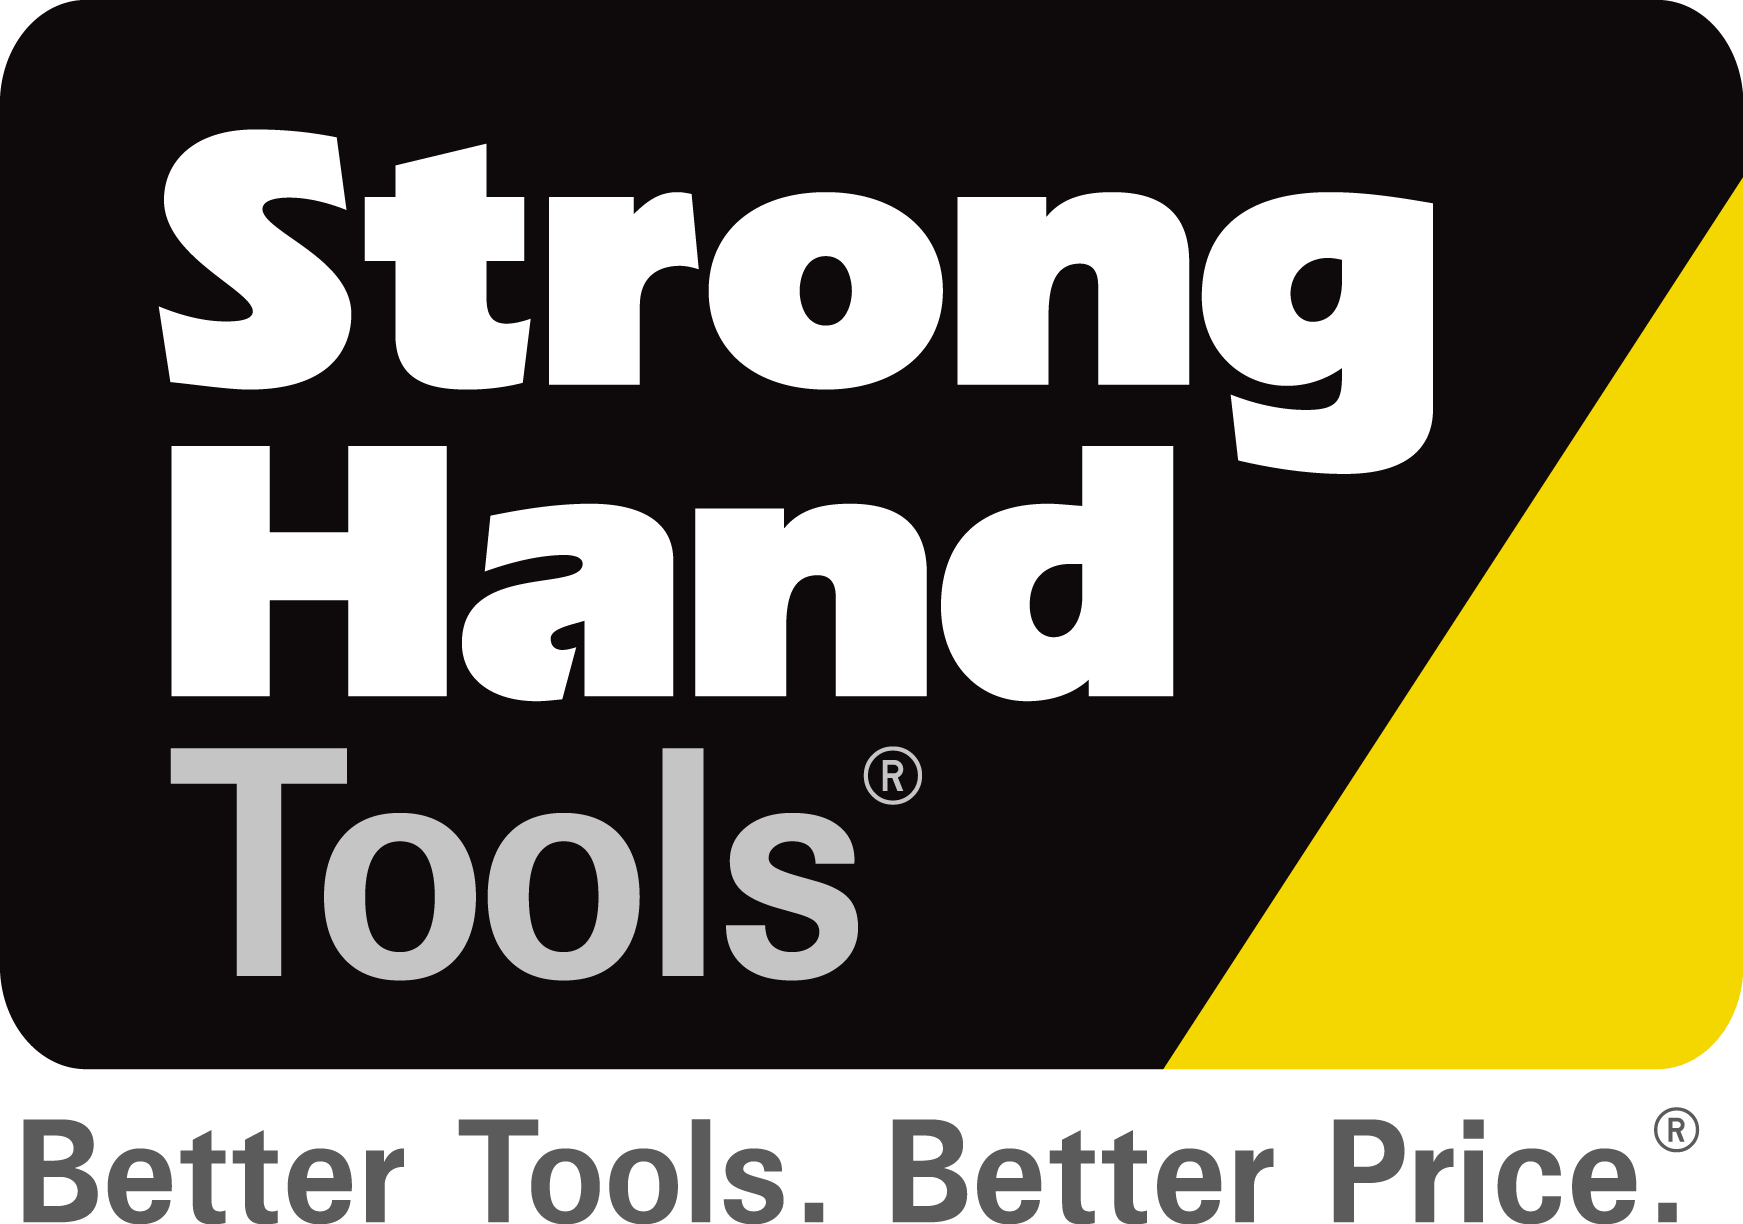 Stronghand Tools - Better Tools, Better Price